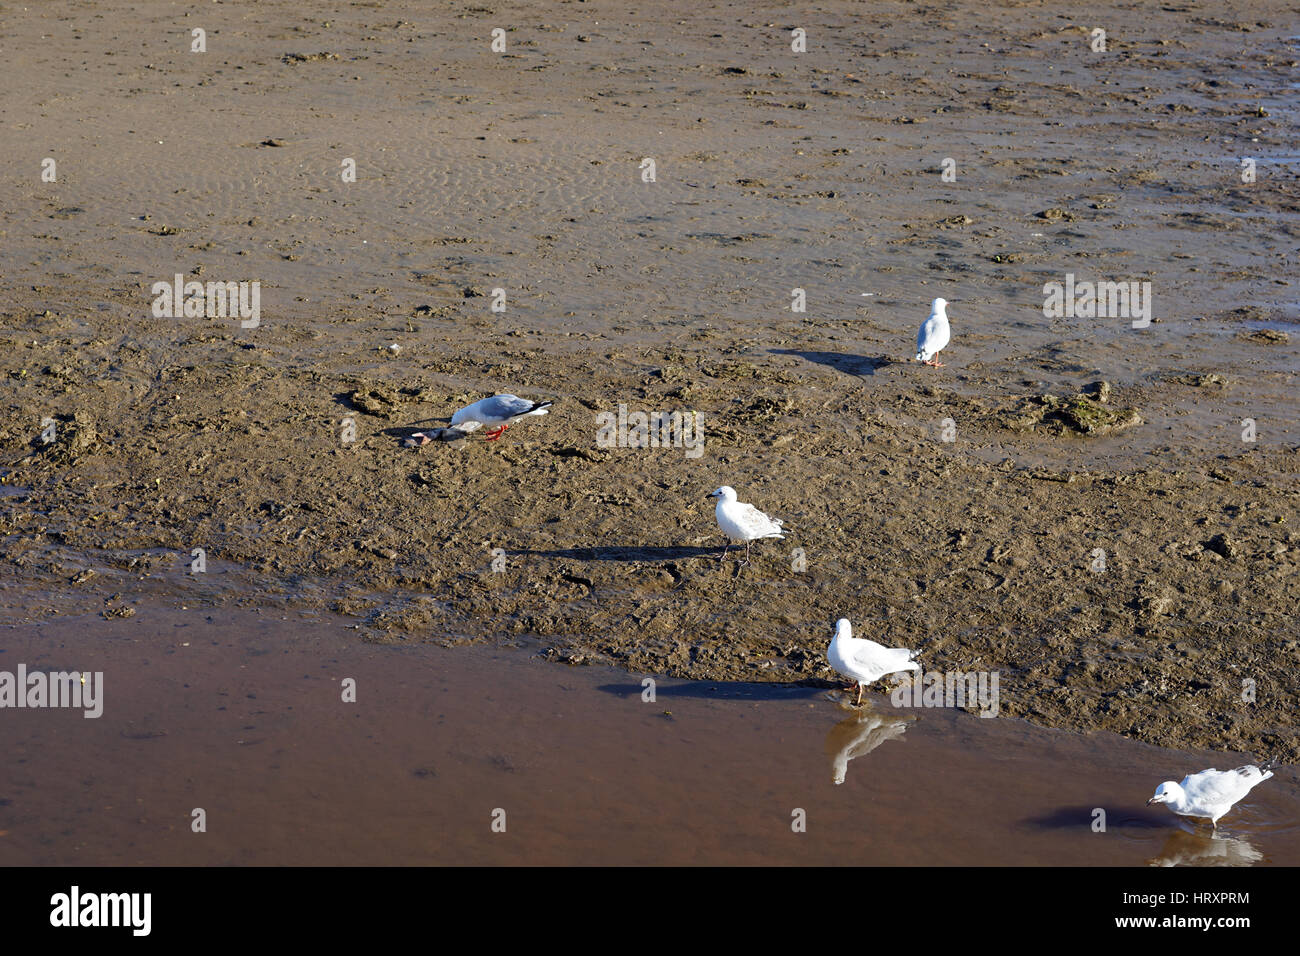 Seagulls at the beach - Stock Image